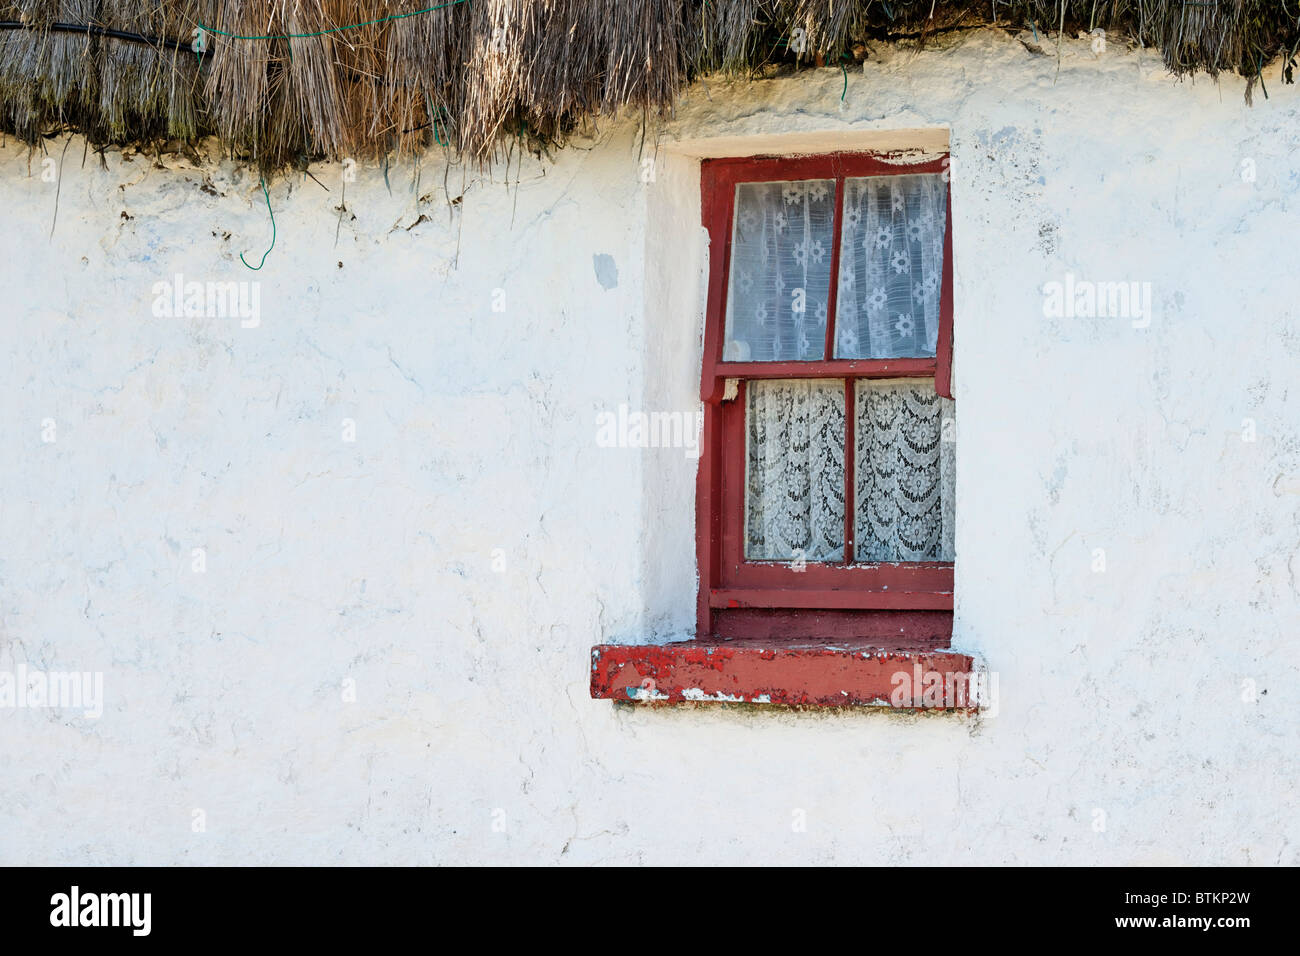 Window in a whitewashed, thatched cottage, Onacht, Inishmore, Aran Islands, County Galway, Ireland. - Stock Image